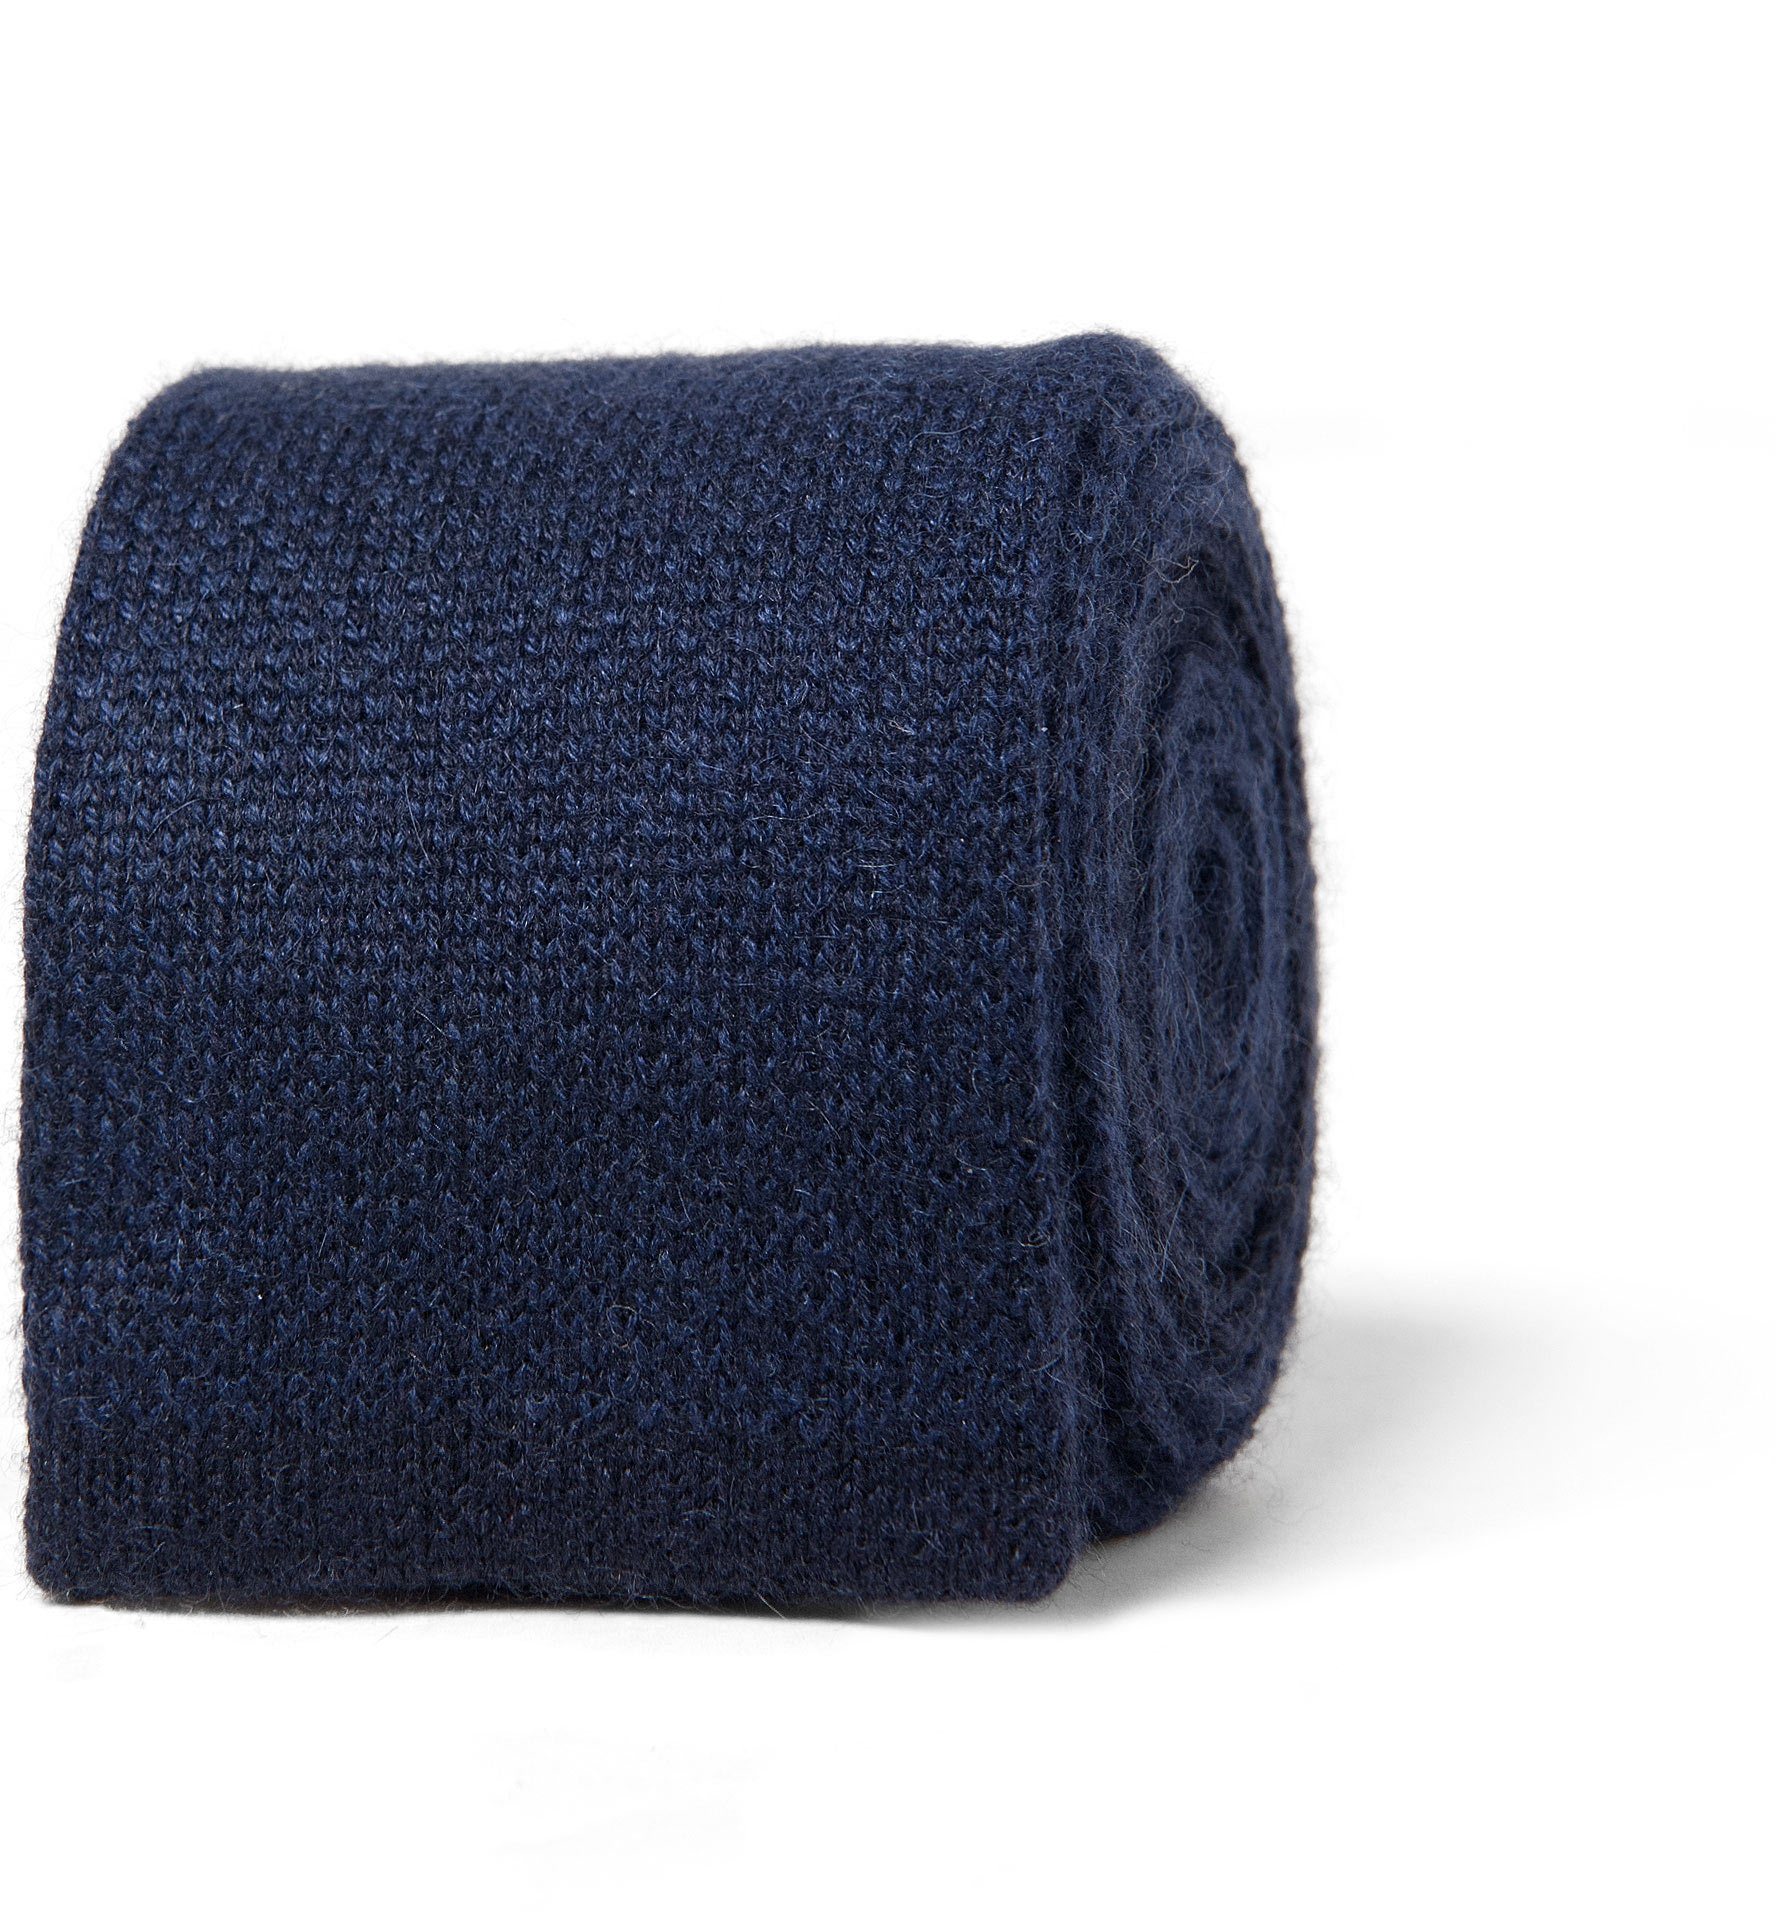 Zoom Image of Navy Cashmere Knit Tie